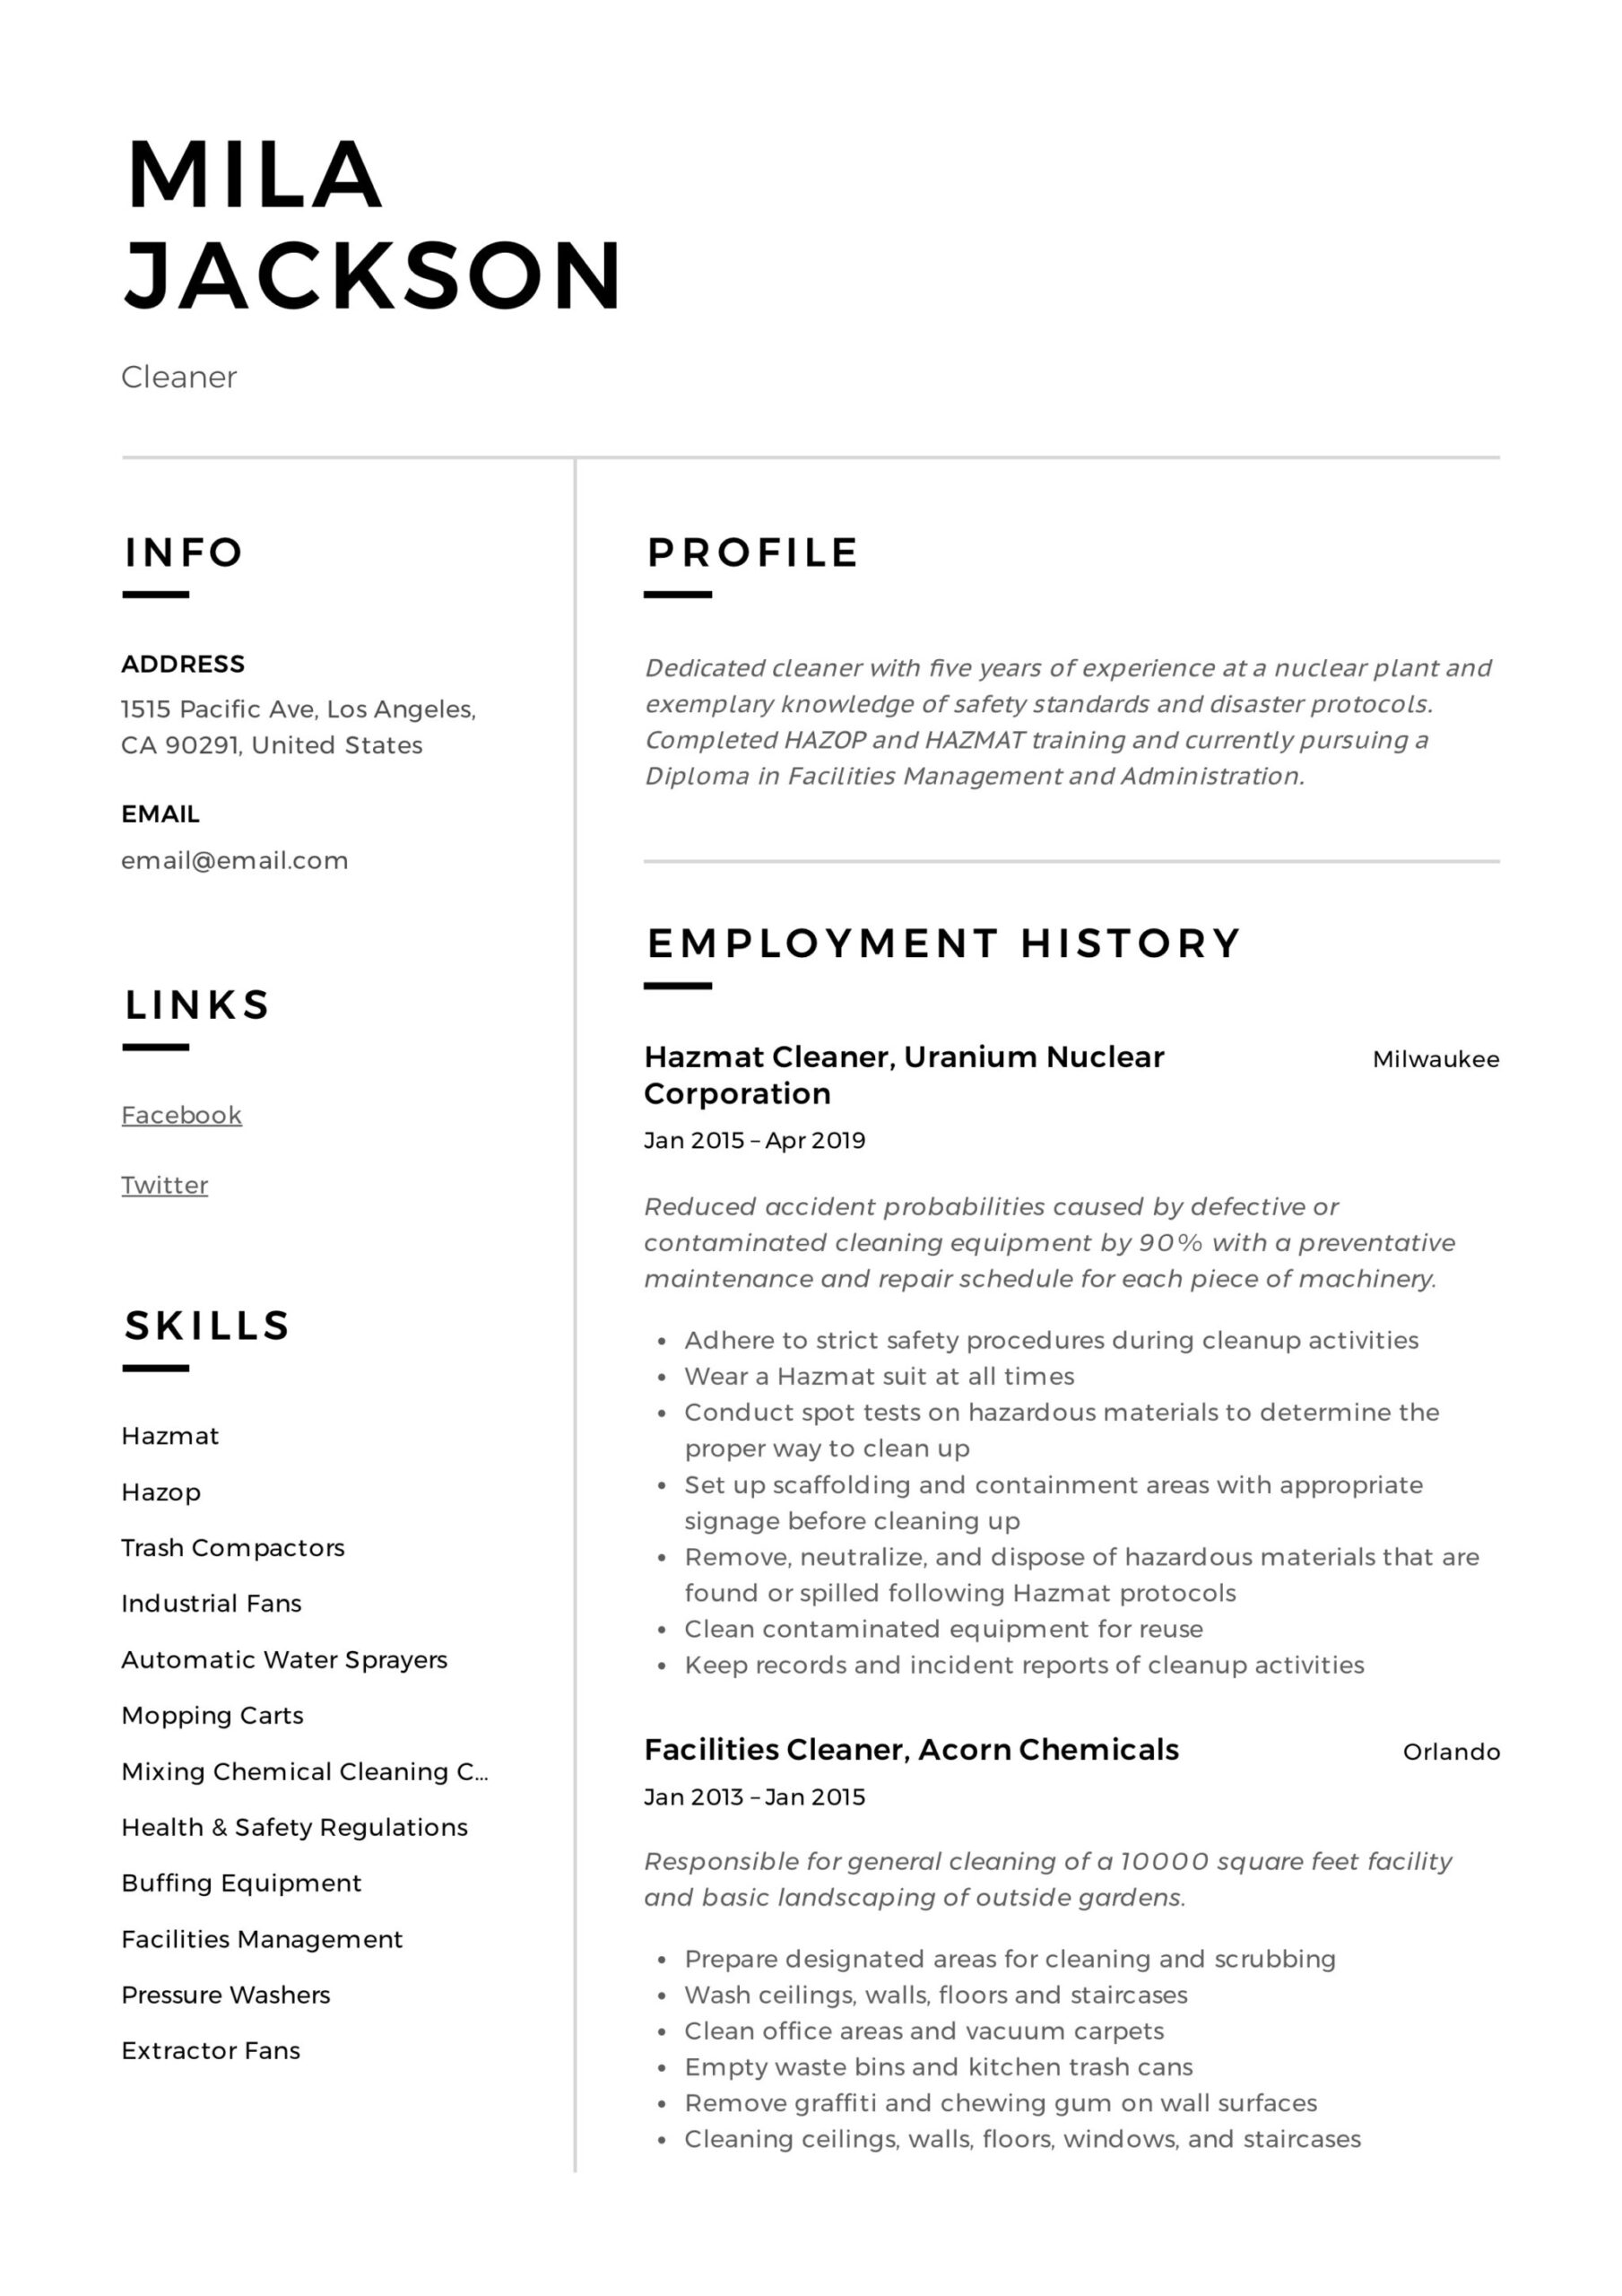 resume for cleaning job with no experience objective mila cleaner high school student Resume Cleaning Objective For Resume